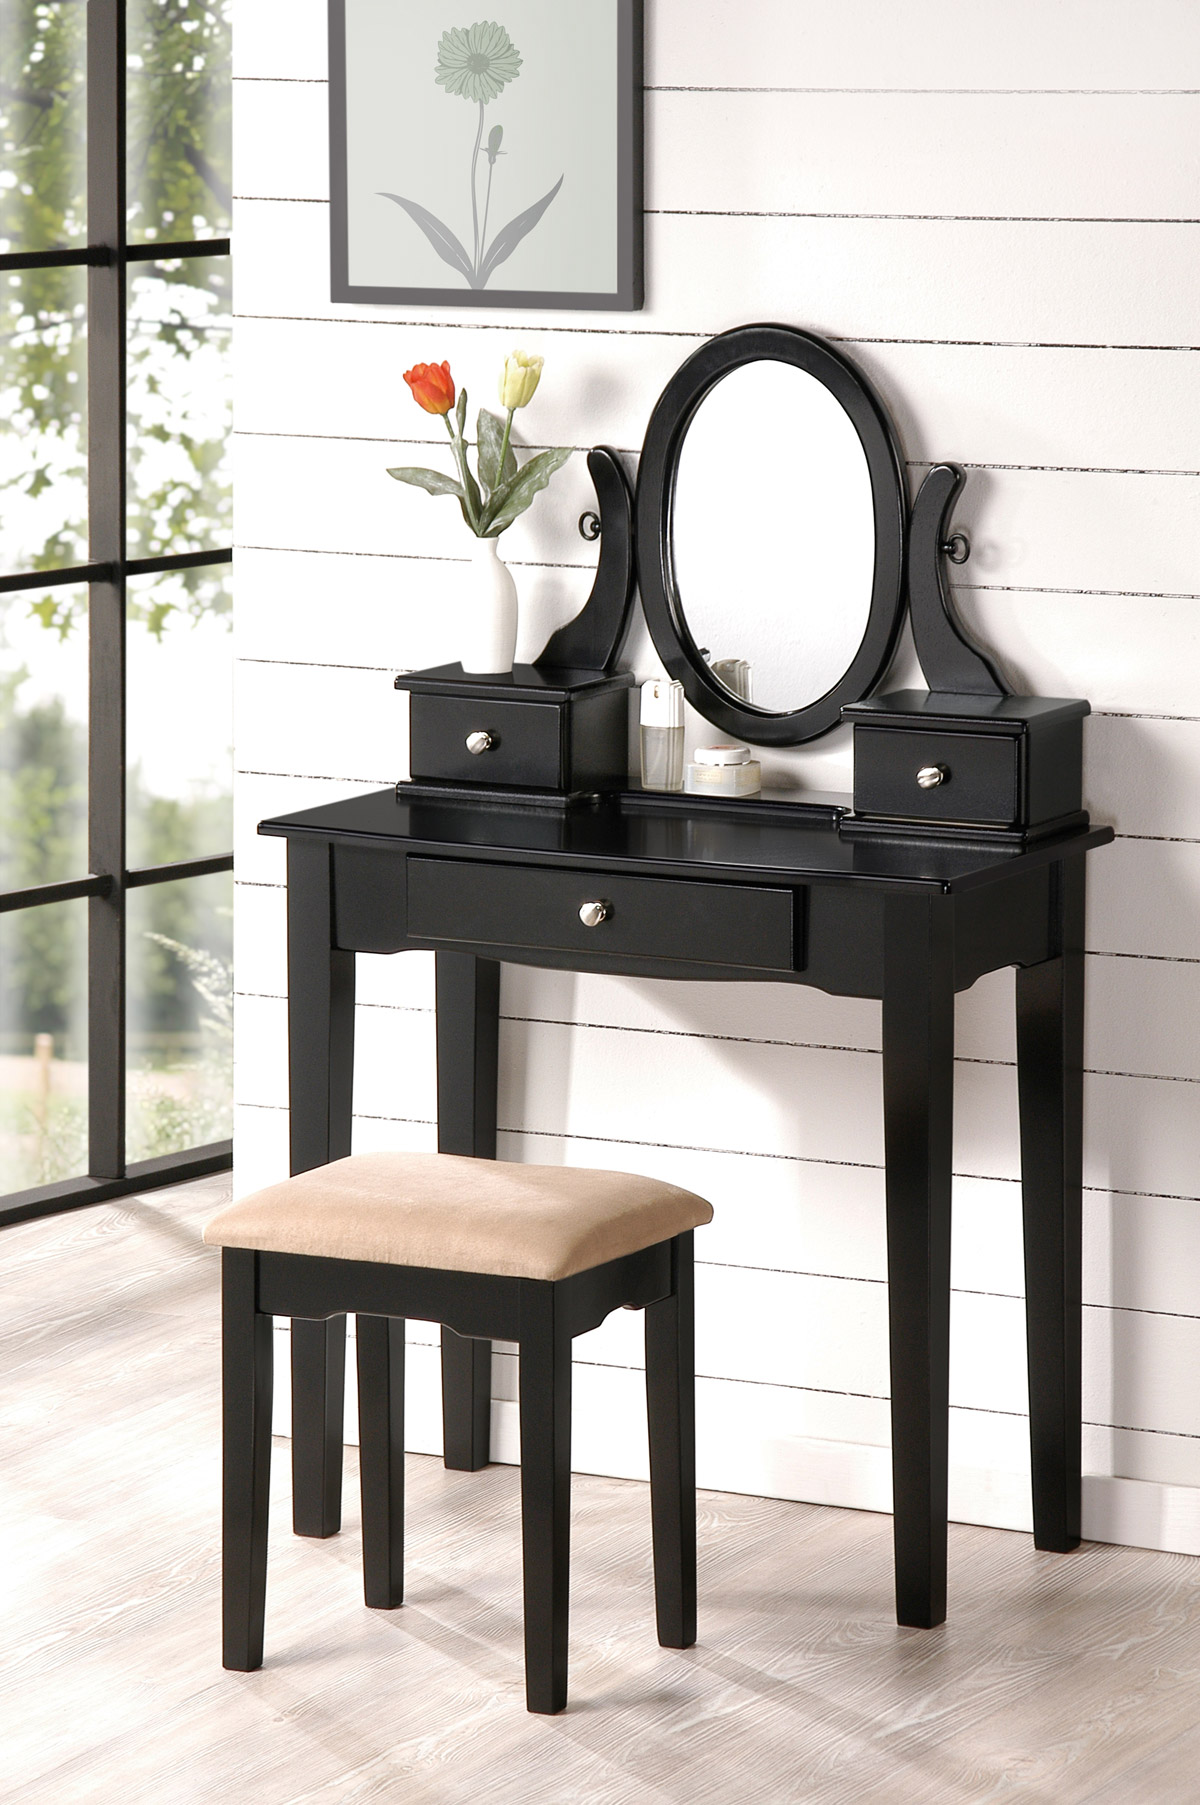 Beautiful bobkona collection Vanity Makeup Table & Stool Set Black